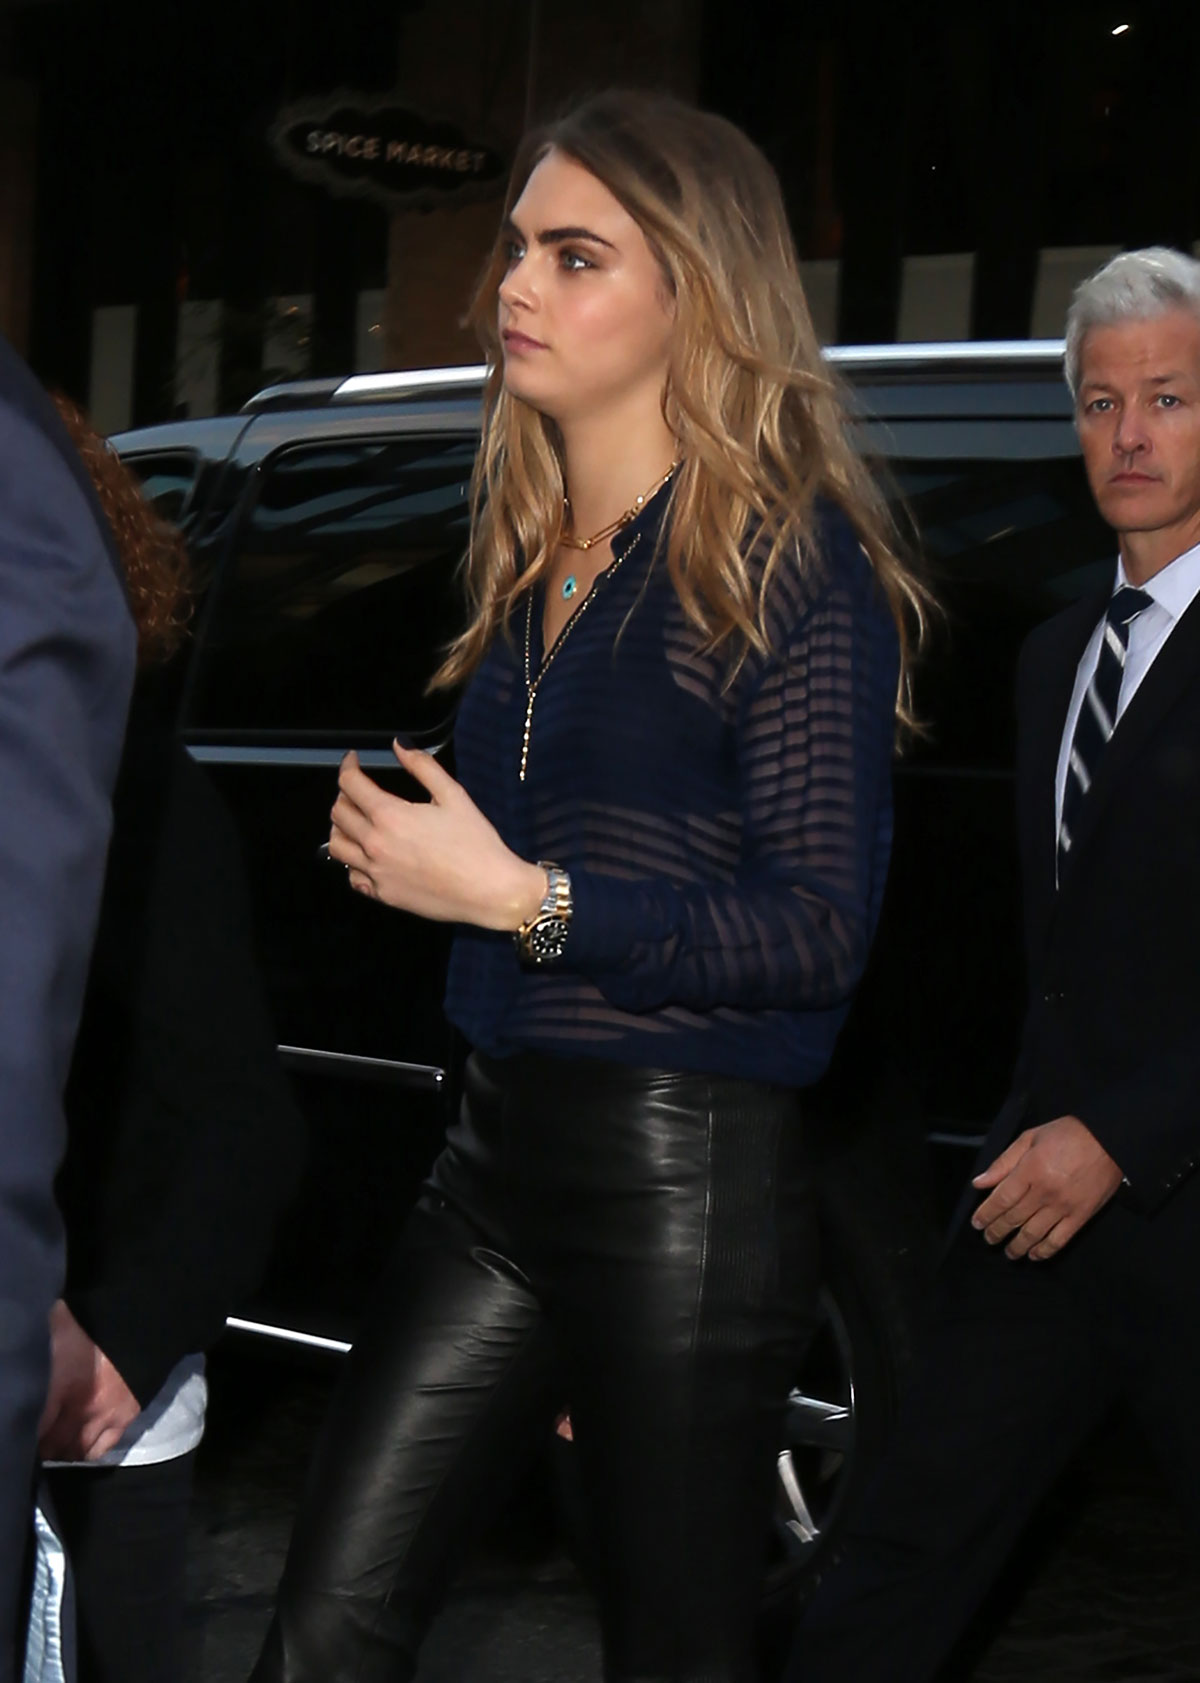 Cara Delevingne was spotted at the celebration of the launch of My Burberry